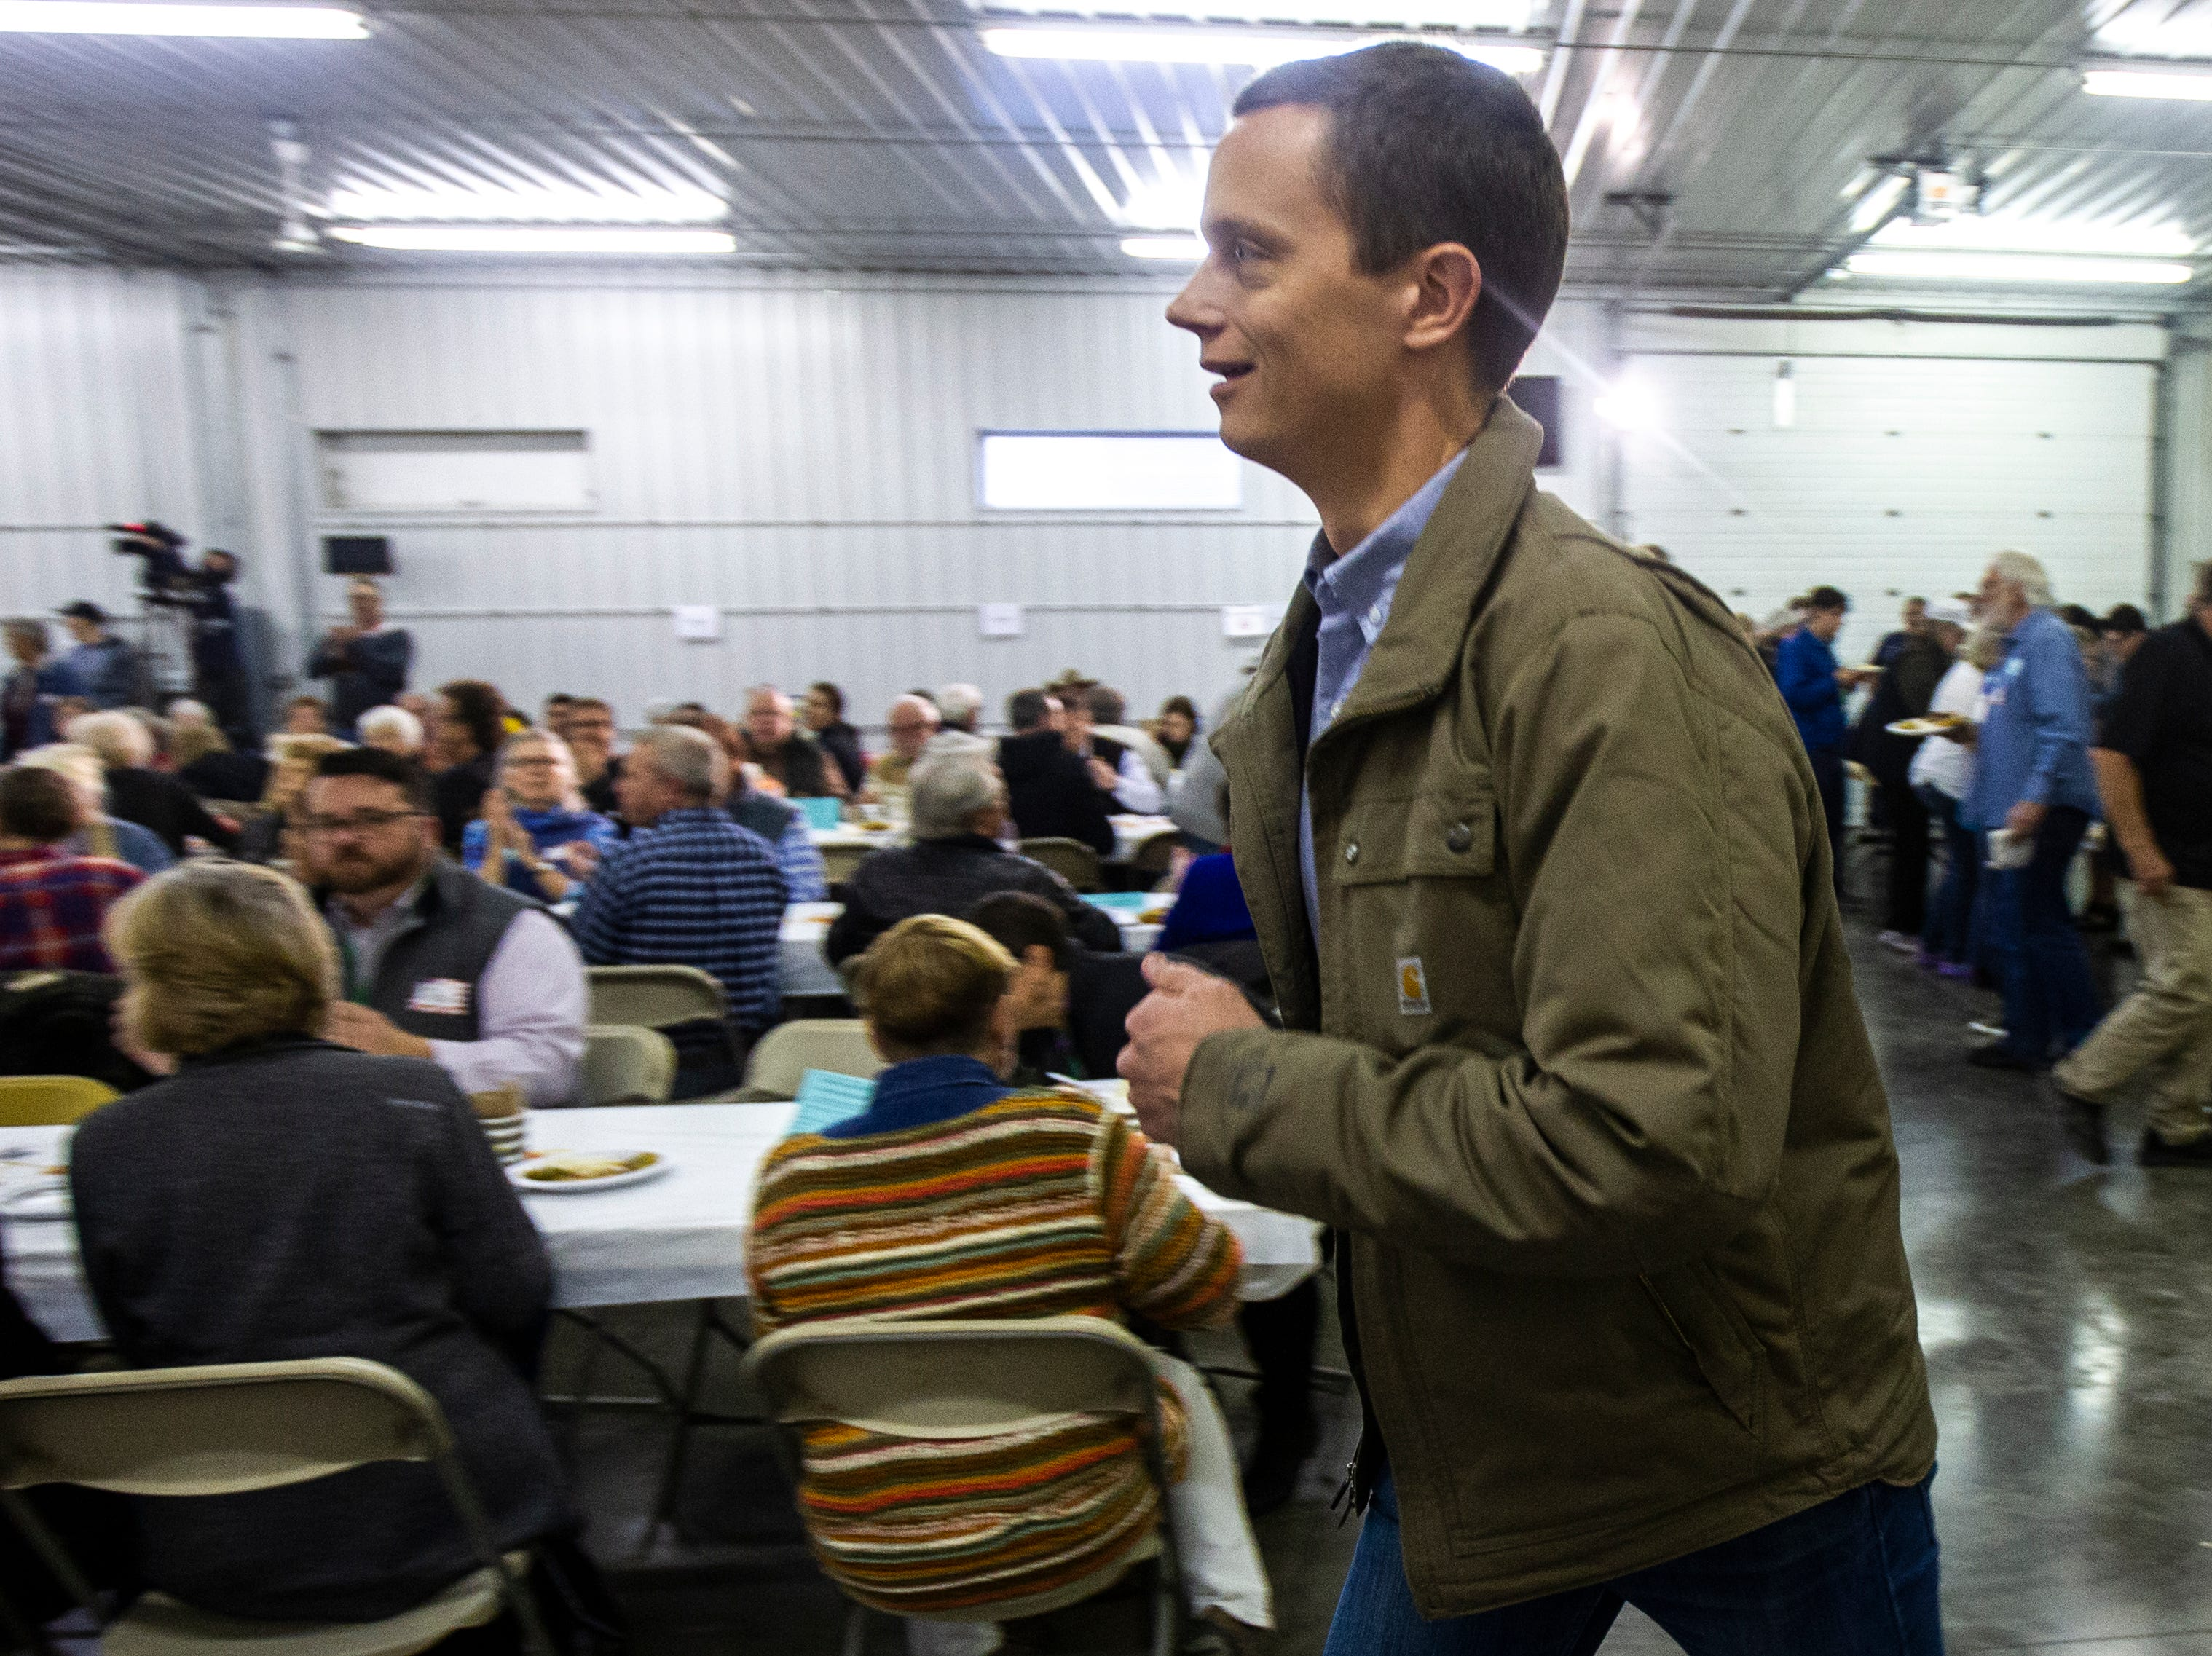 Rob Sand, Democratic candidate for Iowa State auditor, jogs to the stage to speak during the Johnson County Democrats annual barbecue fundraiser on Sunday, Oct. 14, 2018, inside Building C at the Johnson County Fairgrounds in Iowa City.